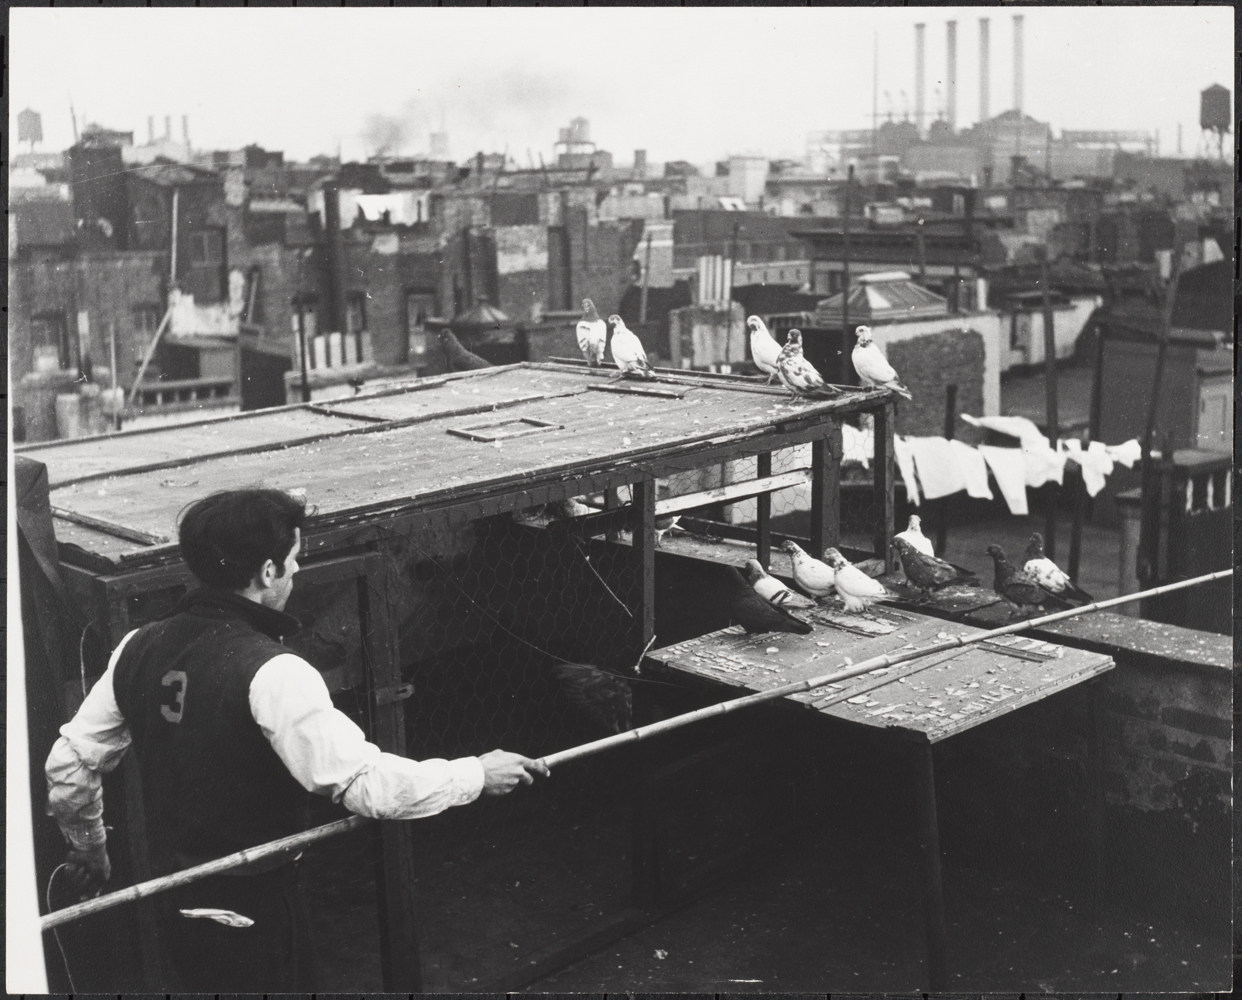 Roy Perry. Raising Pigeons on Rooftops, Lower East Side, ca 1940. Museum of the City of New York 80.102.144